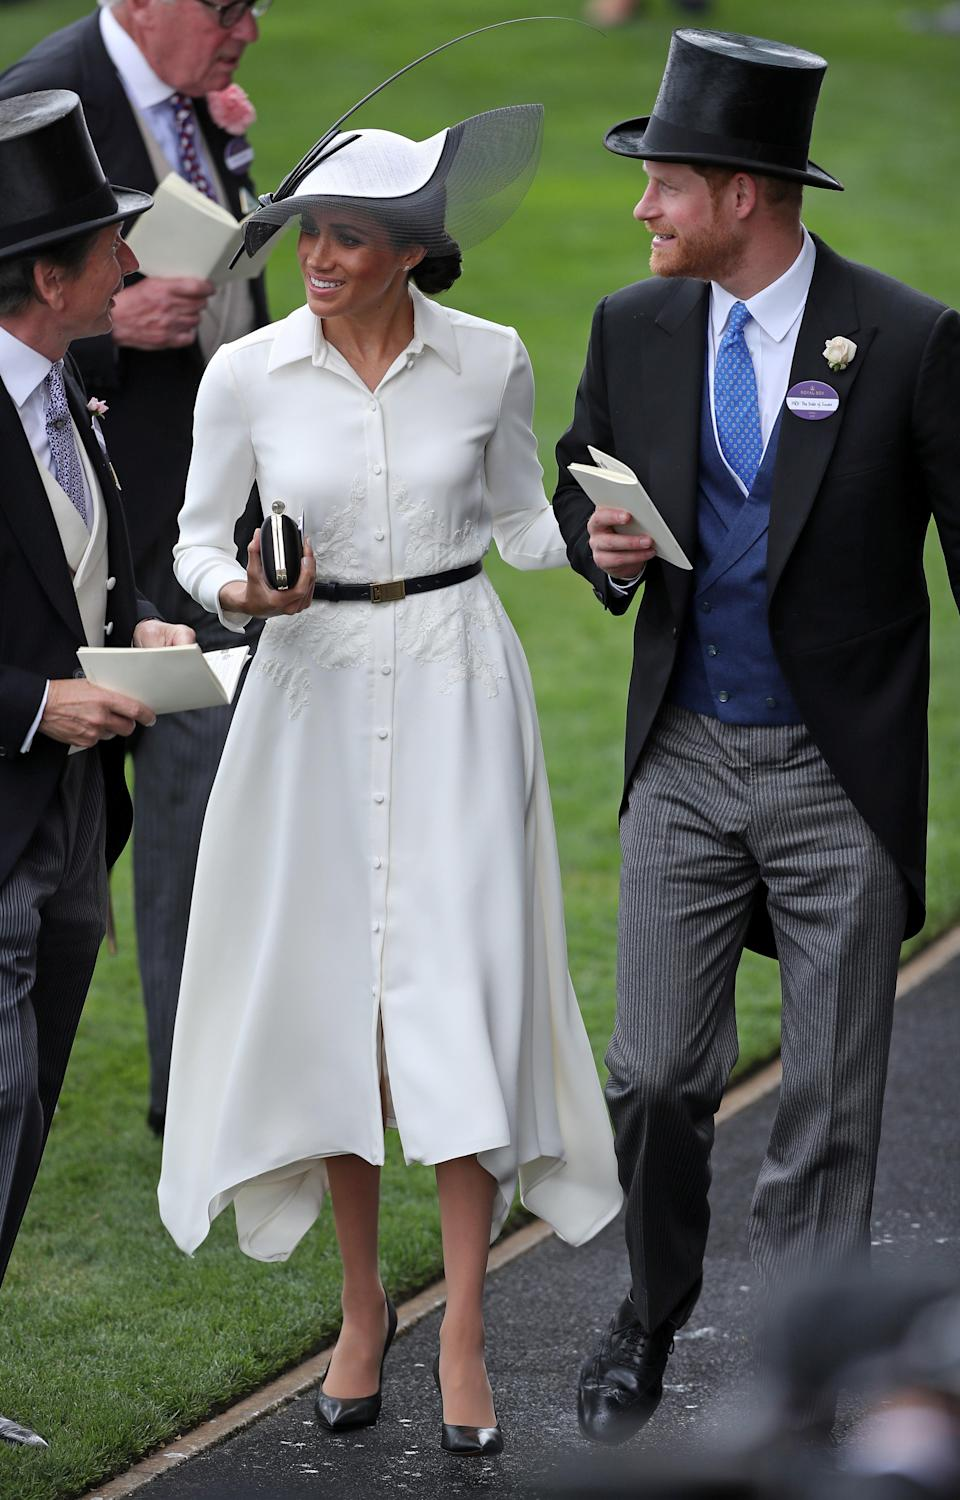 The Duchess of Sussex opted for a crisp white dress by Givenchy for Royal Ascot 2018 and accessorised the look with a slim belt by the French label and Philip Treacy hat [Photo: Getty]